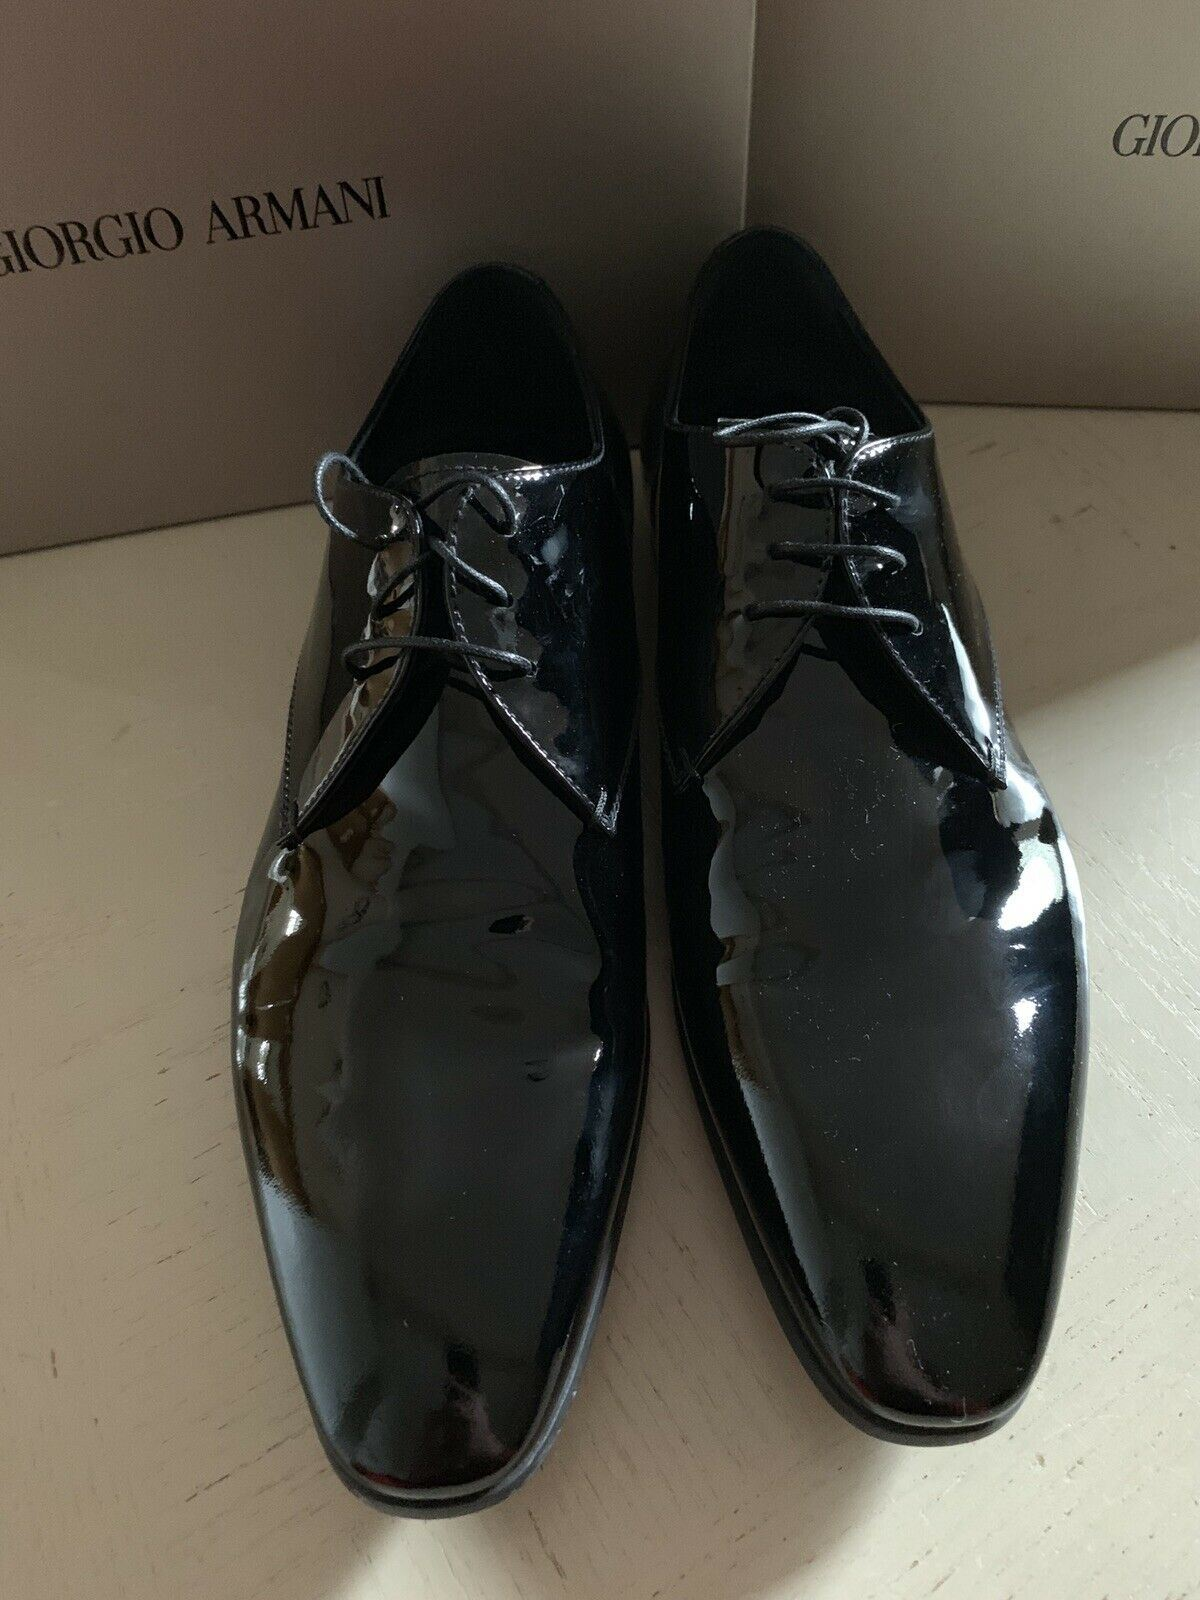 New $595 Giorgio Armani Mens Leather Oxfords Shoes Black 12 US/11 UK X2C036 Ita